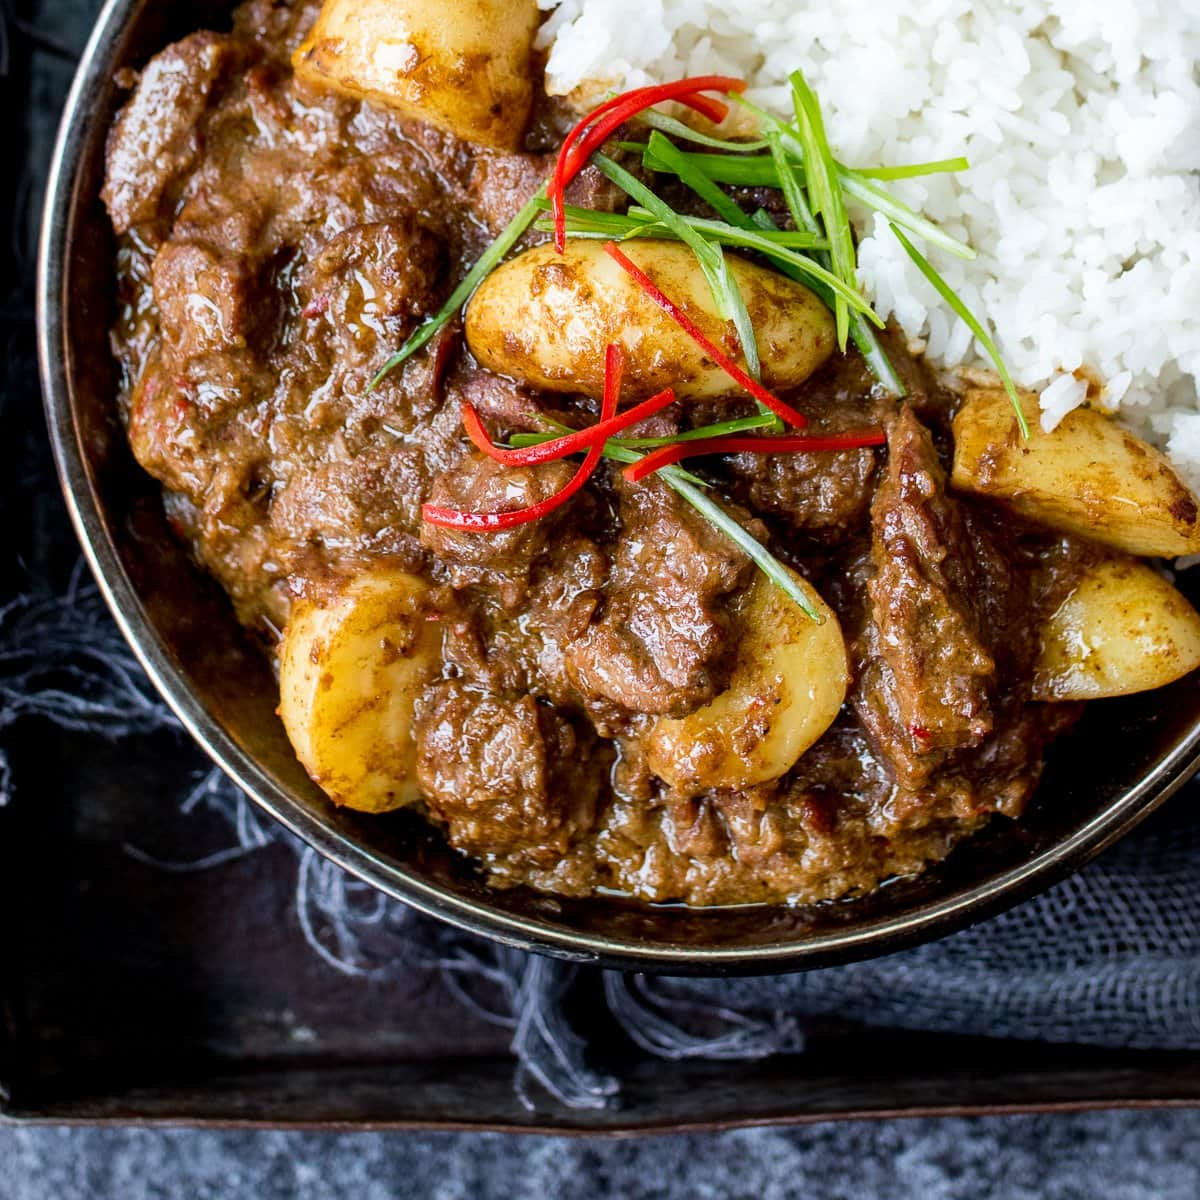 A bowl of beef massaman curry with rice on a dark background